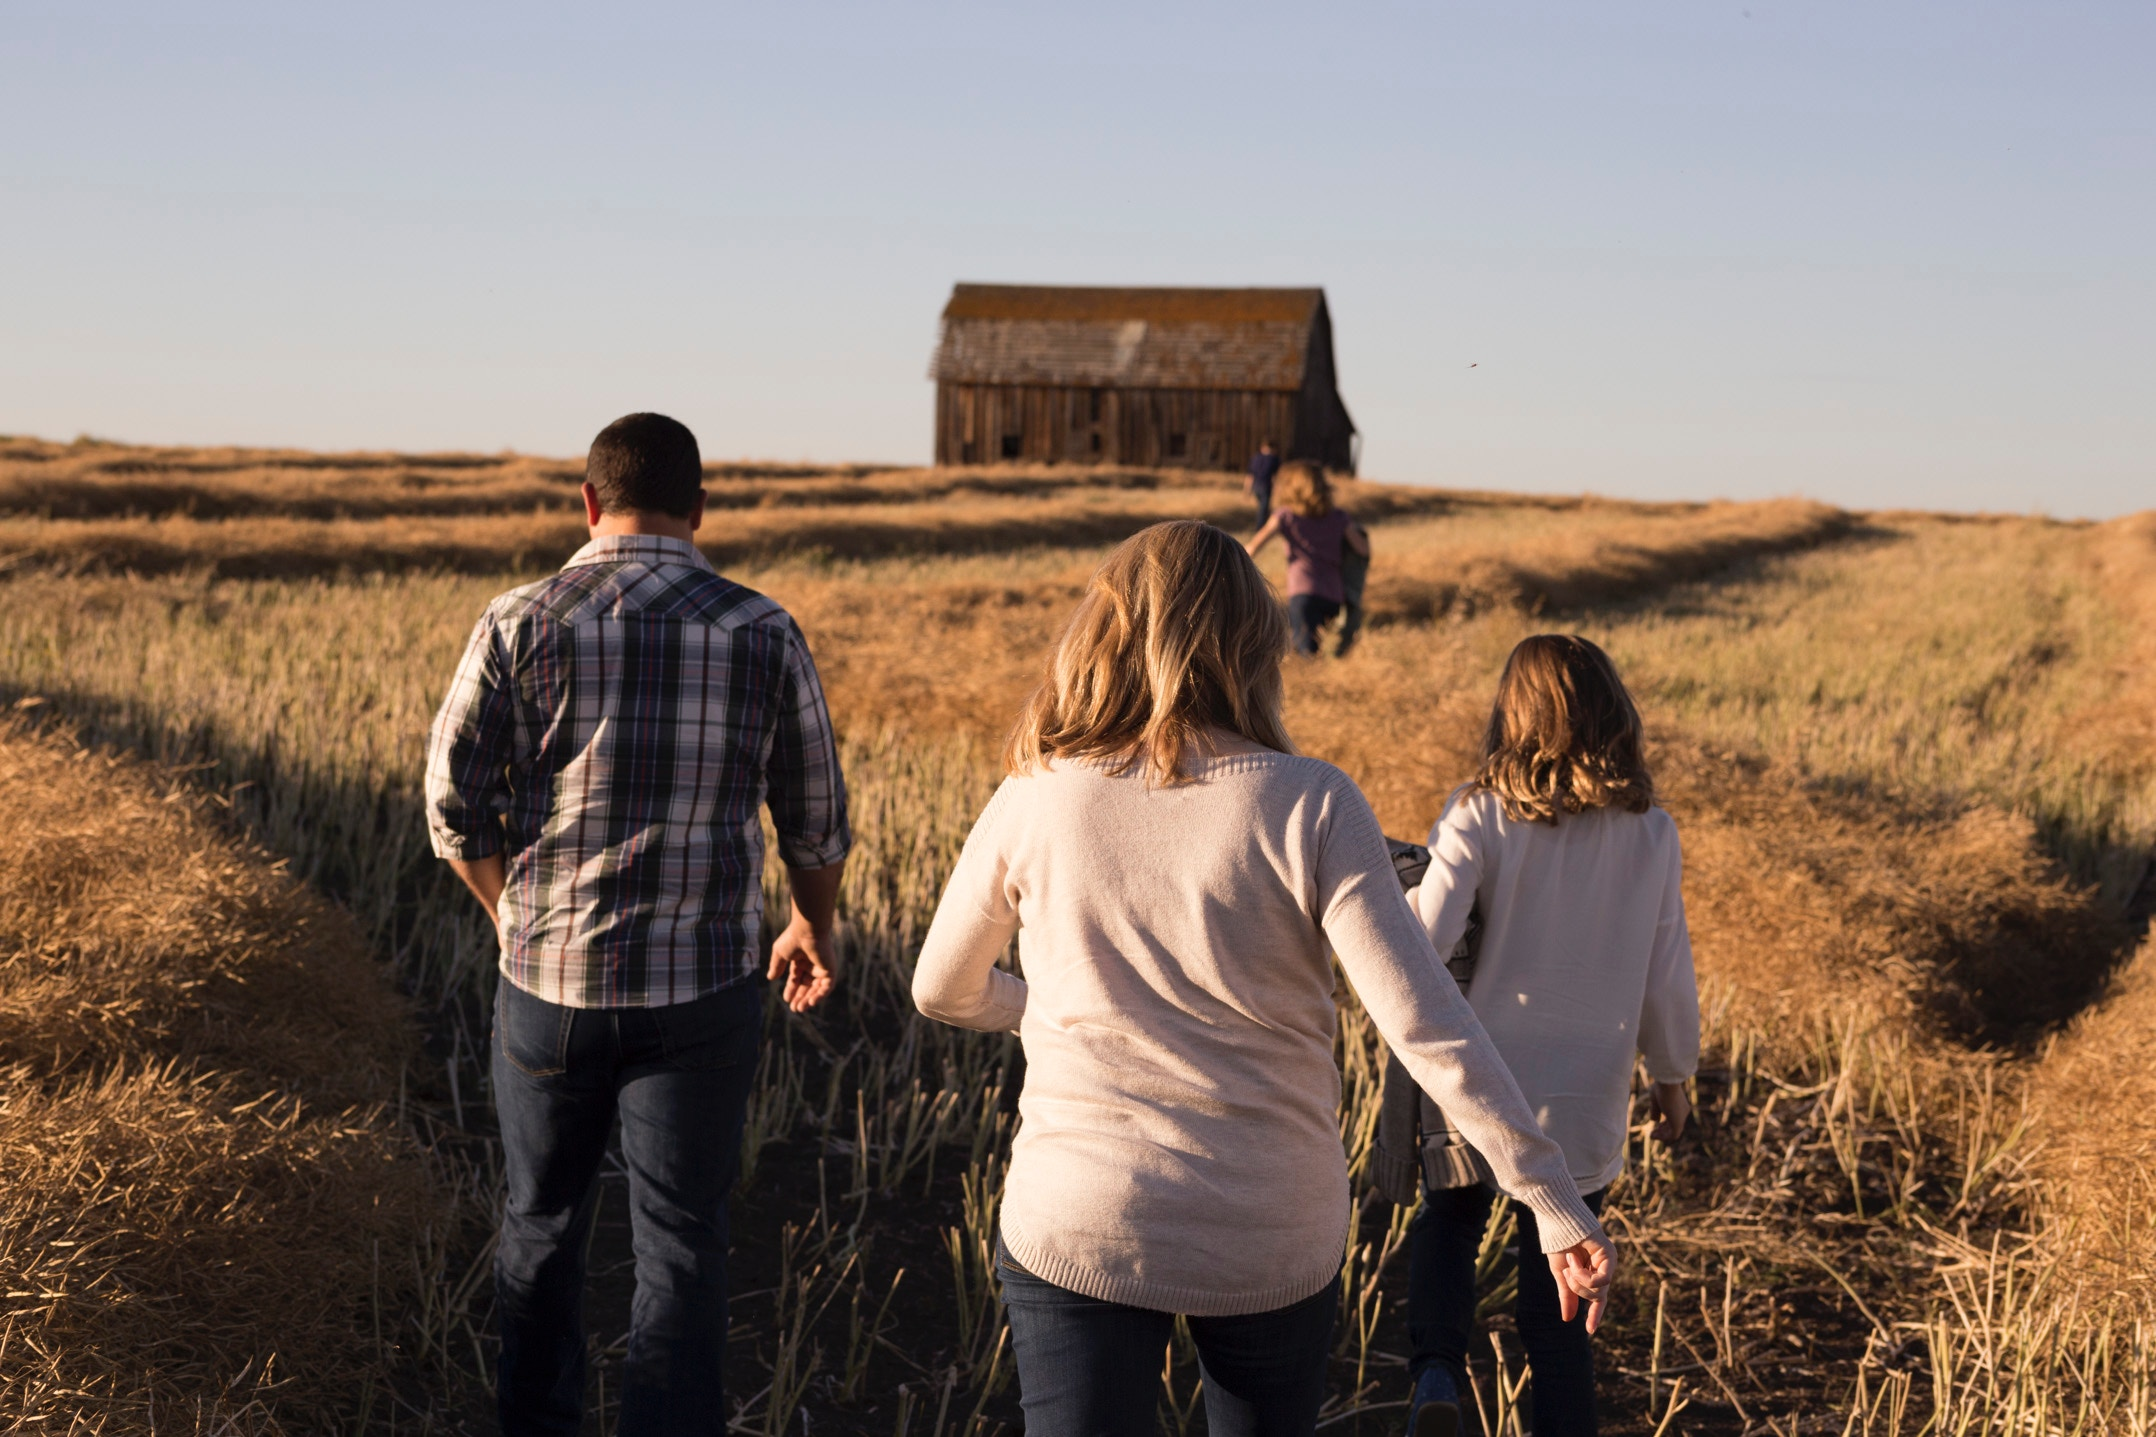 Families going through conflict, divorce or loss.